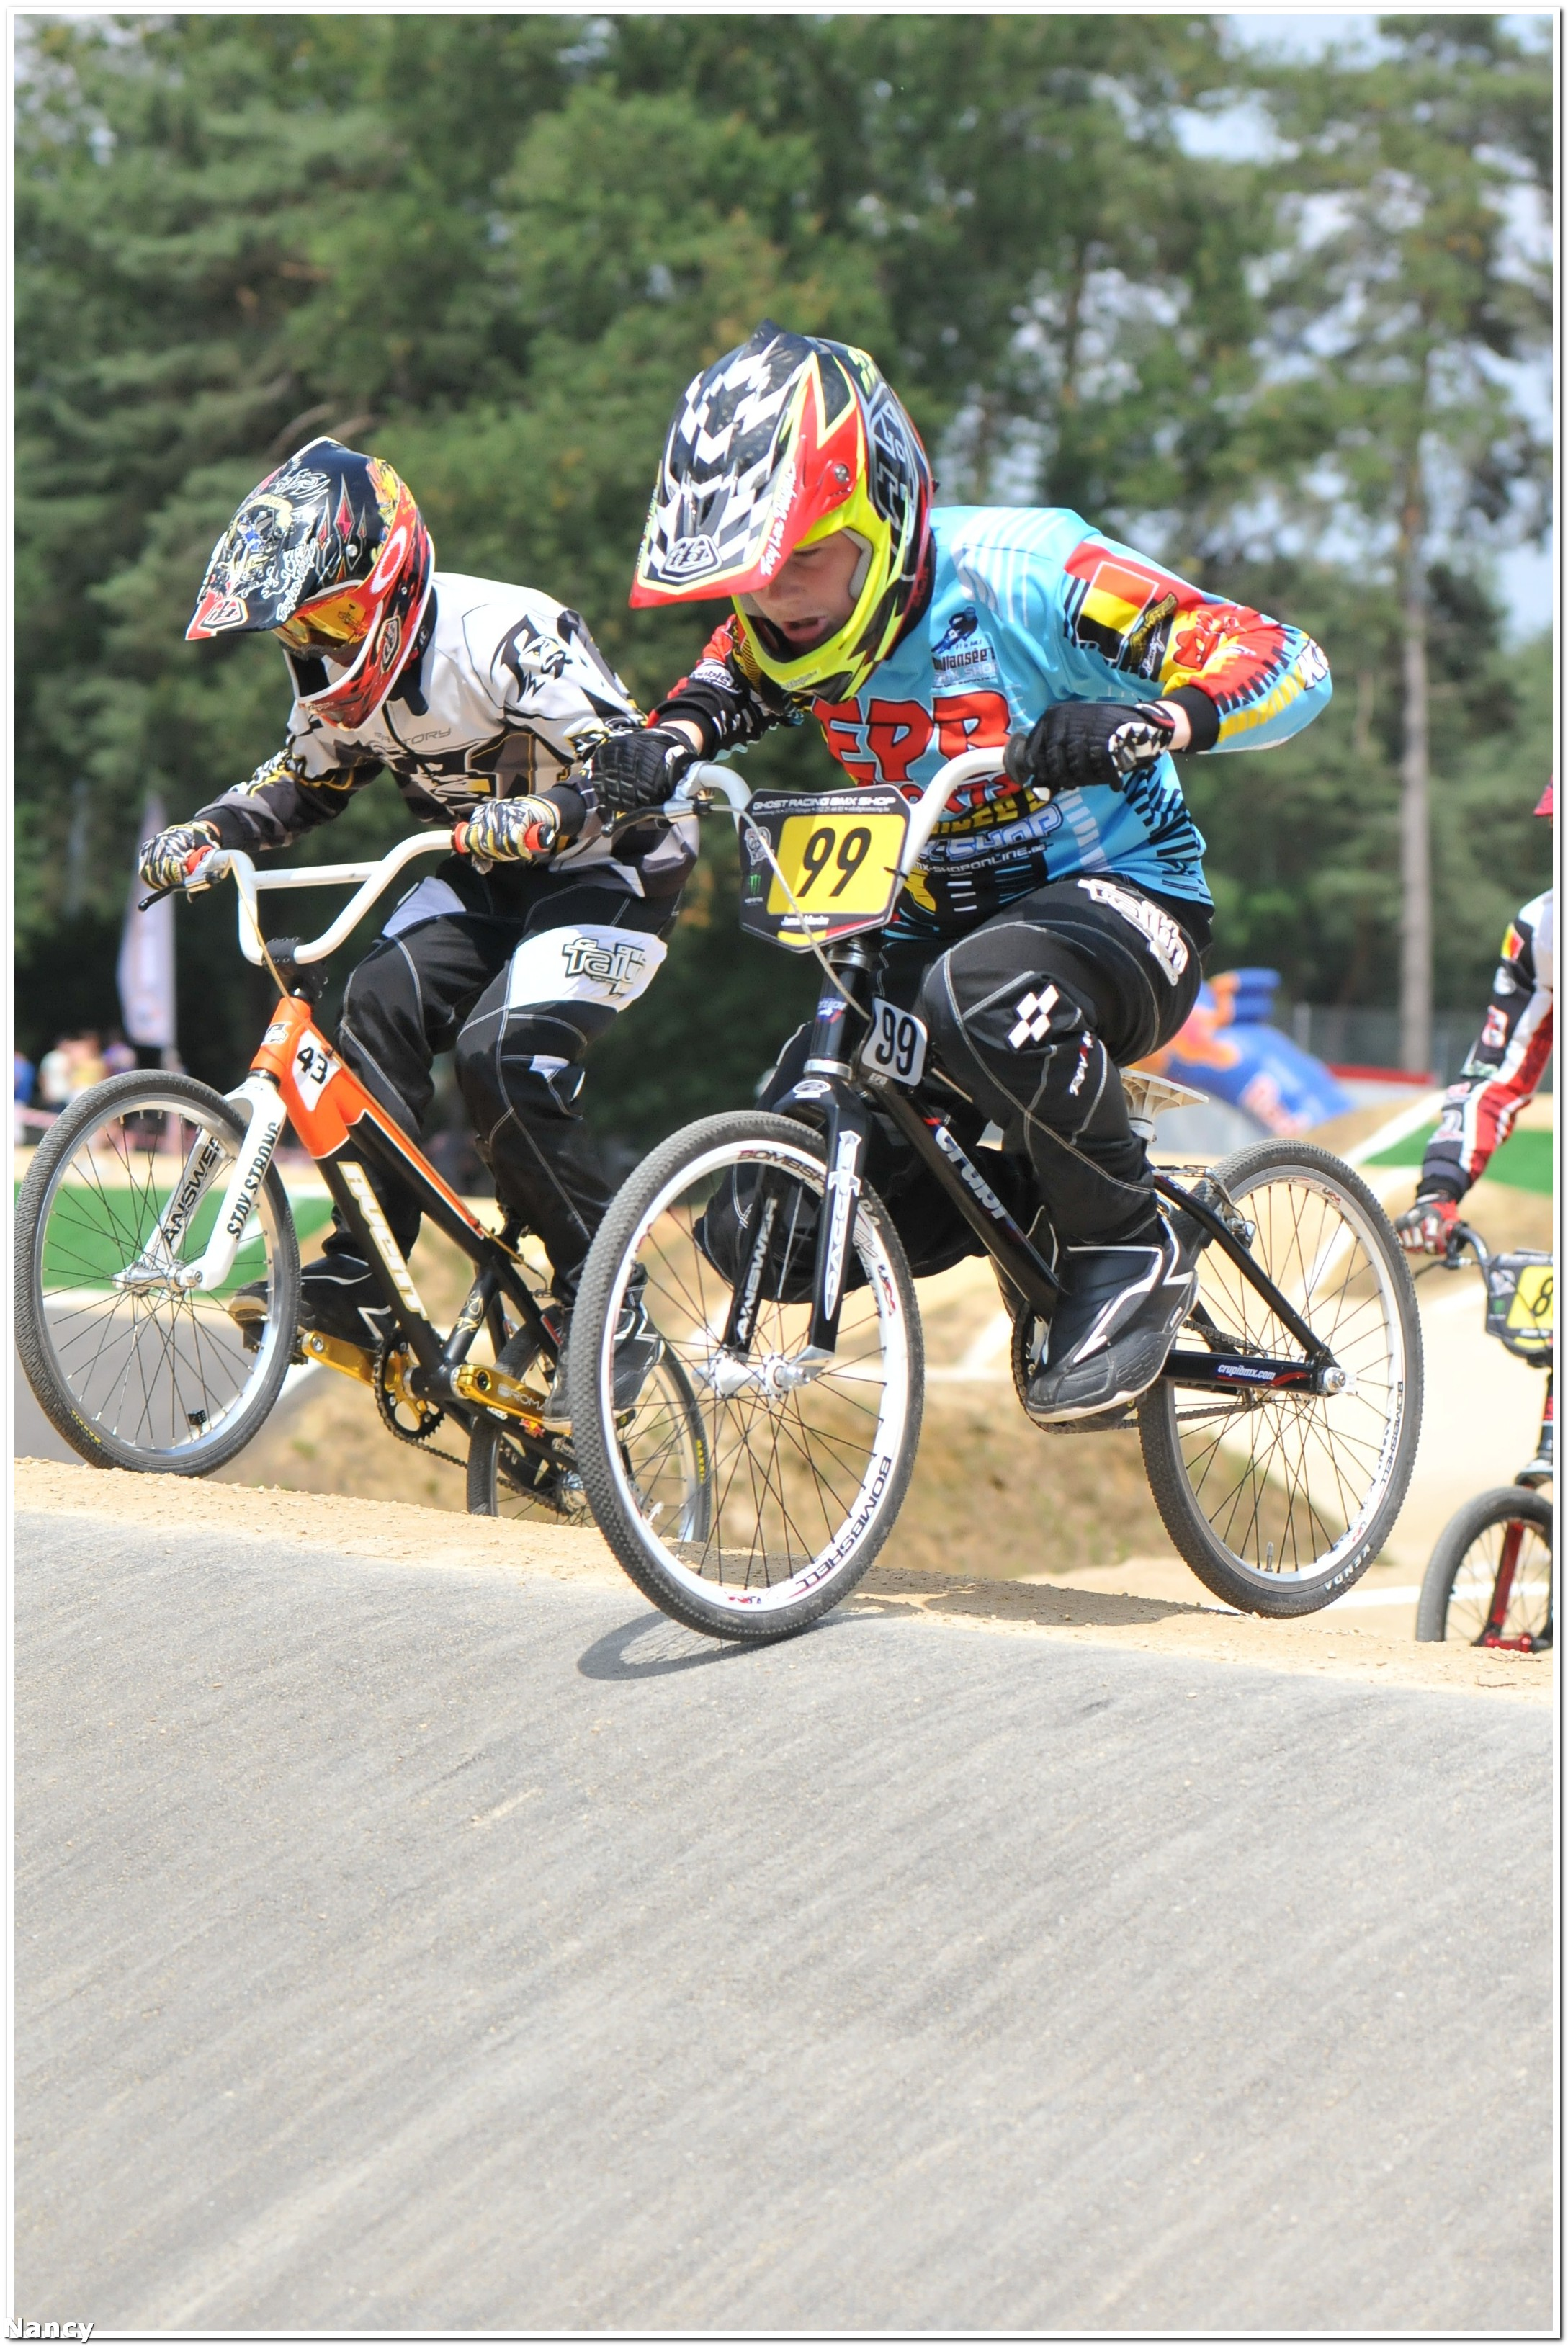 3 Nation Cup in Zolder 14-15 september 2013